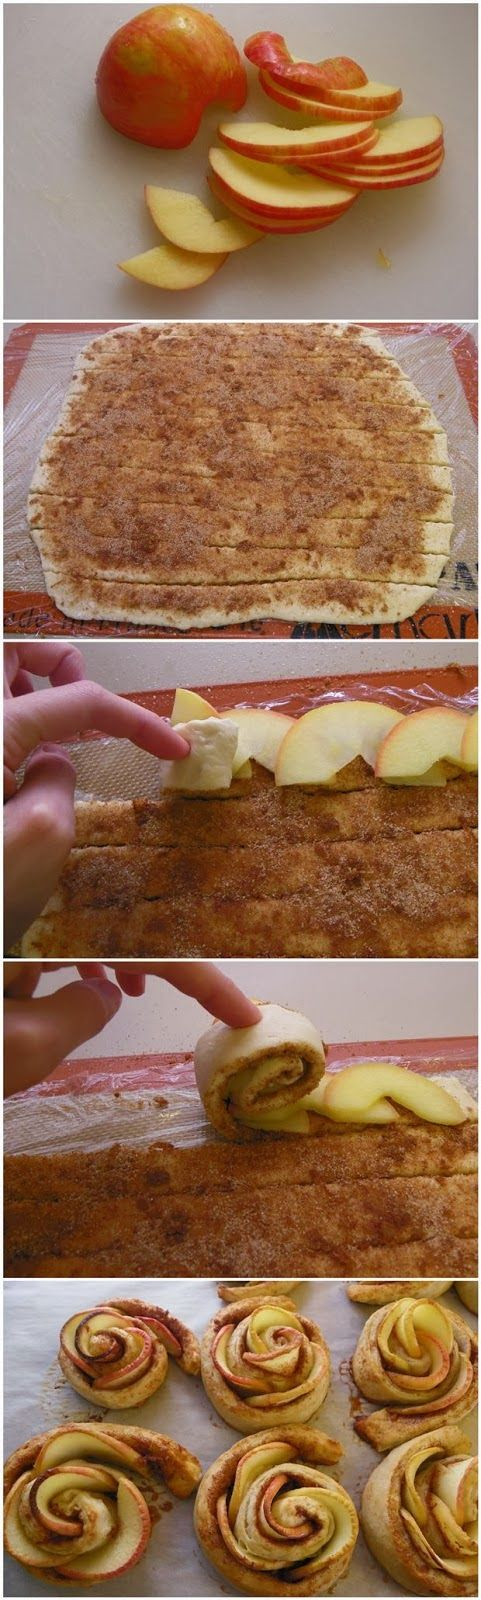 Yummy... Apple Roses Pastry Recipe & Picture Tutorial ~ Easy, uses Puff Pastry Sheets sprinkled with lemon zest, sugar and cinnamon and nutm...